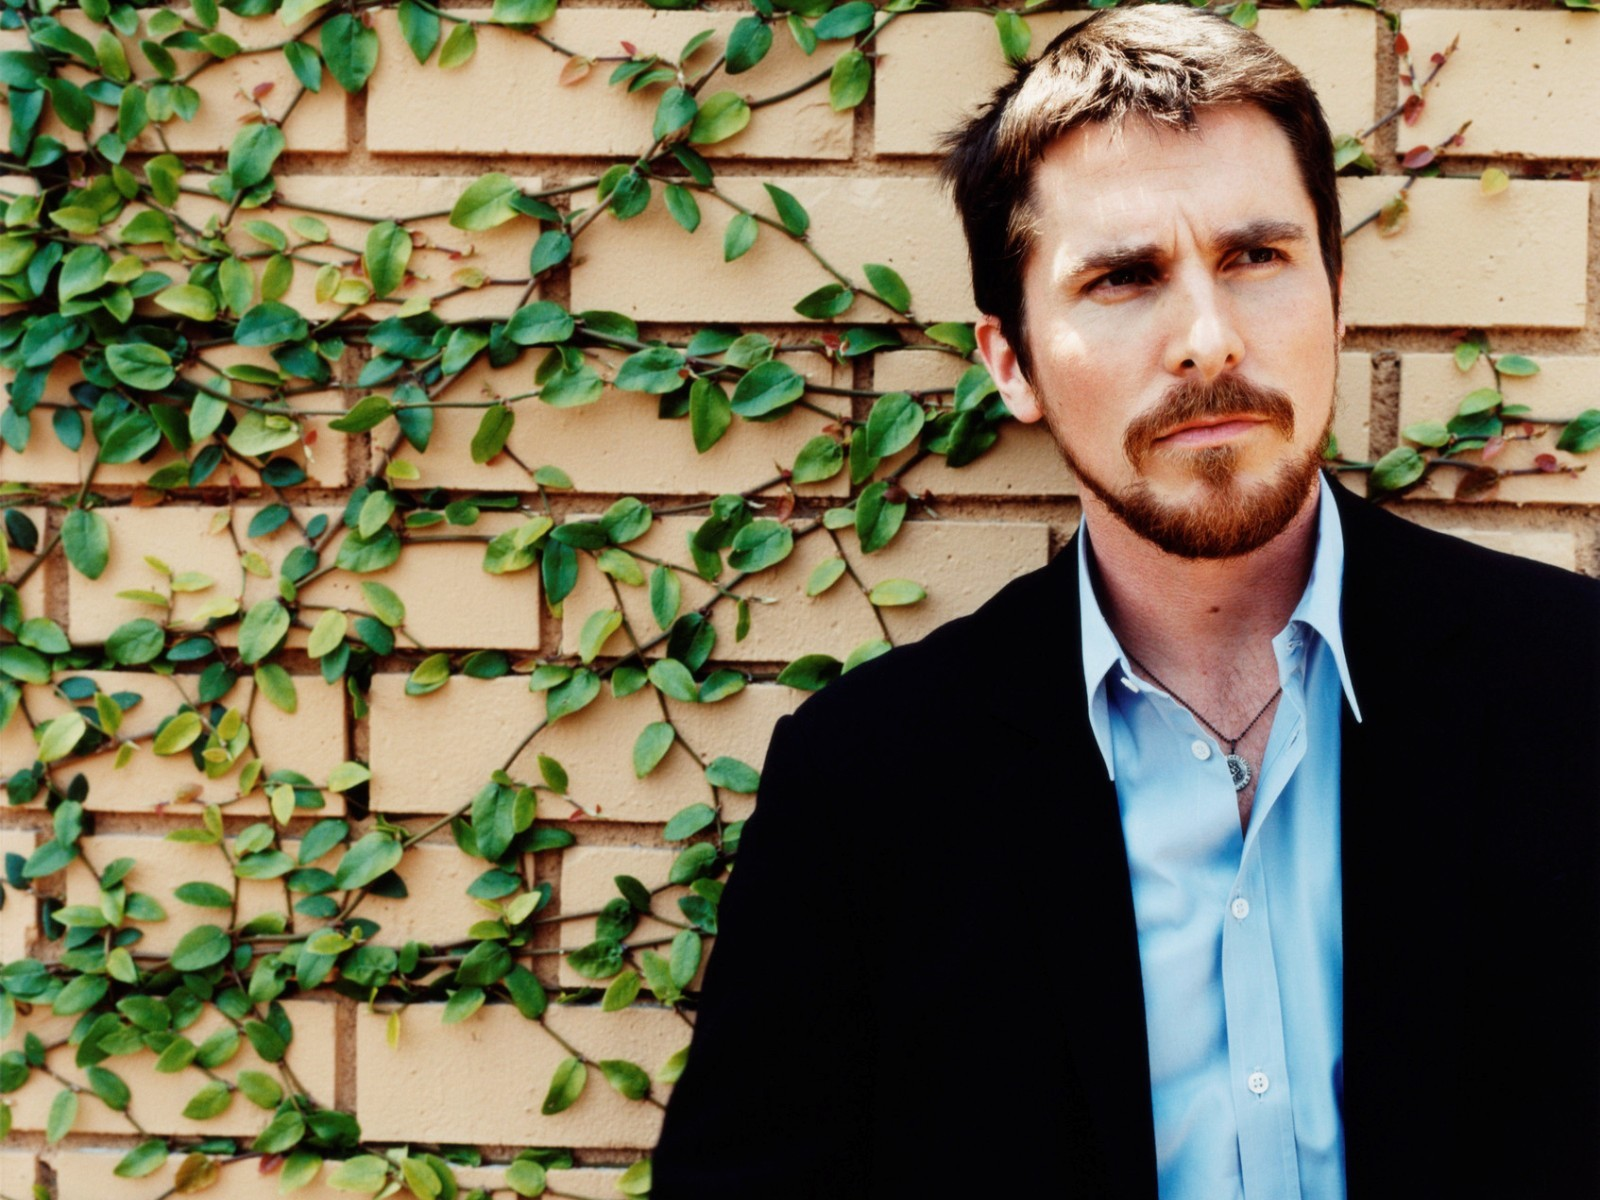 1600x1200 - Christian Bale Wallpapers 29